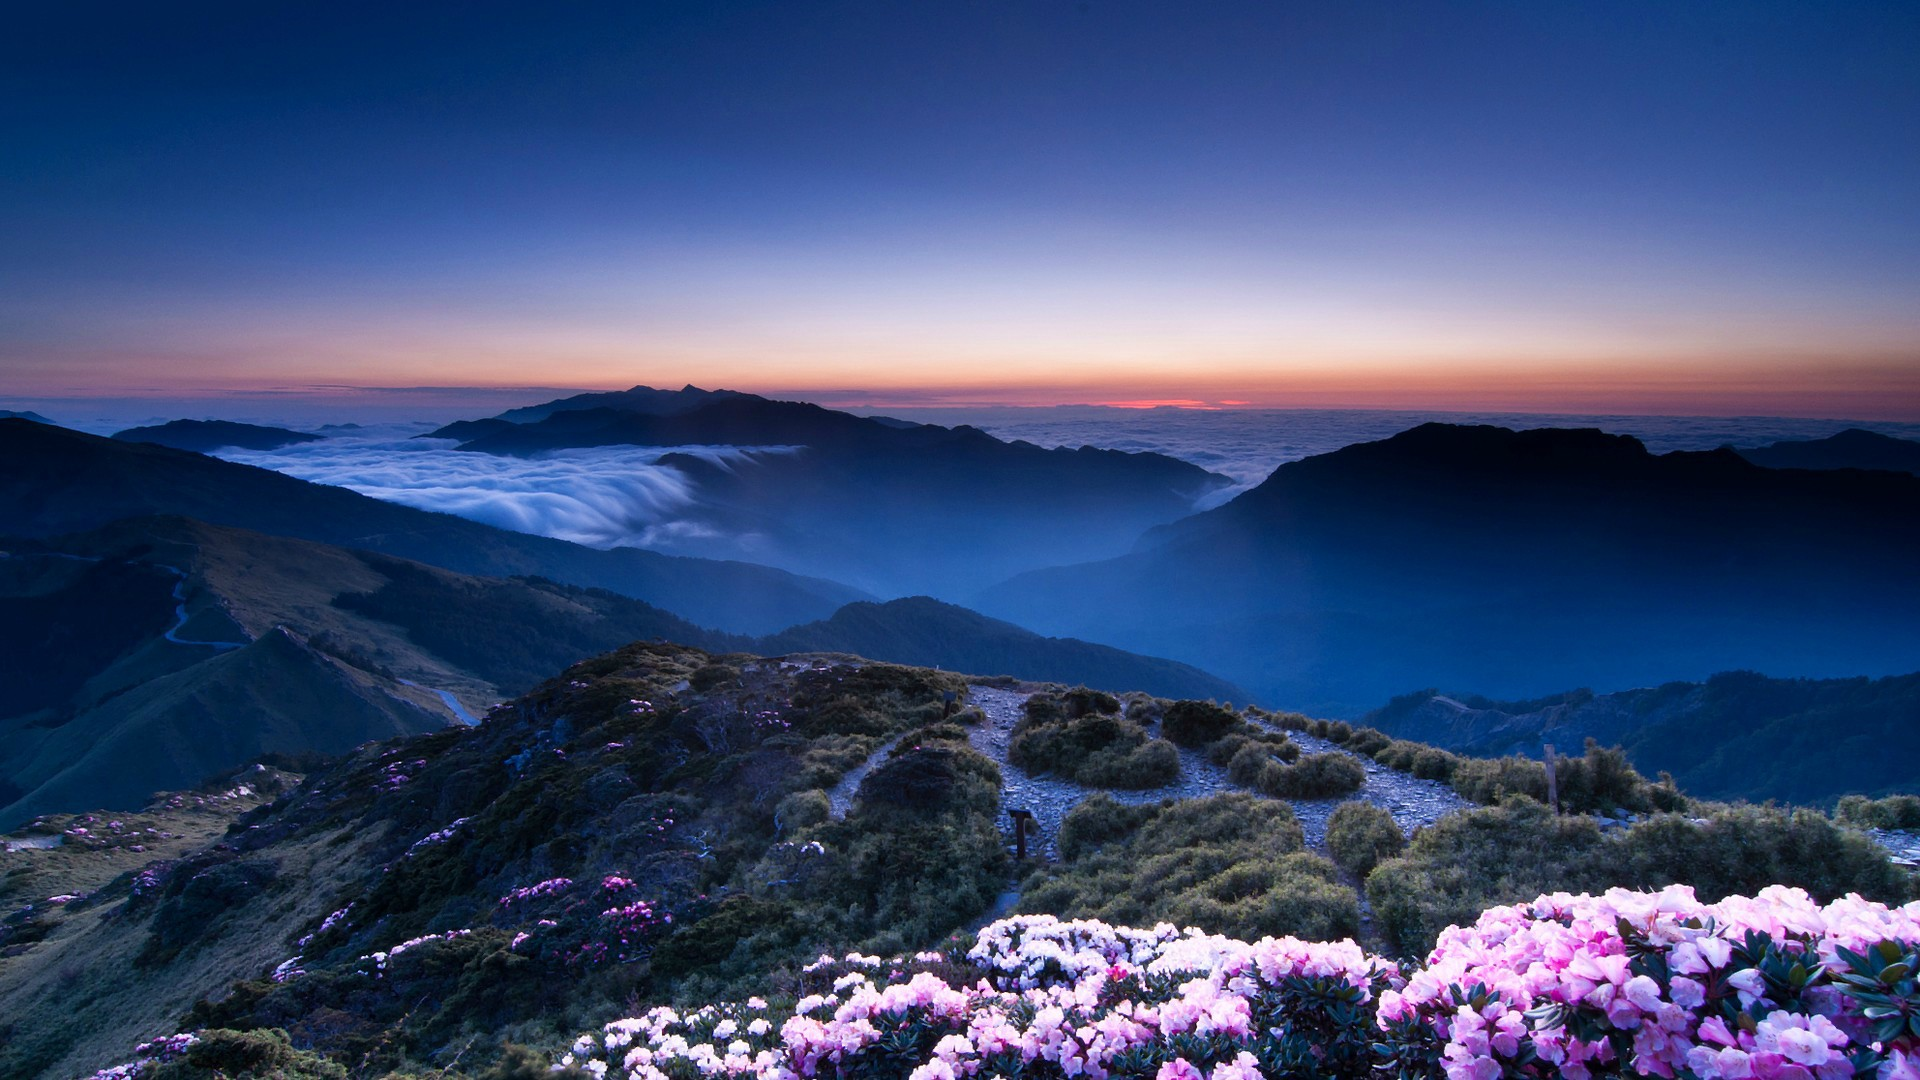 flowers on mountain wallpaper background